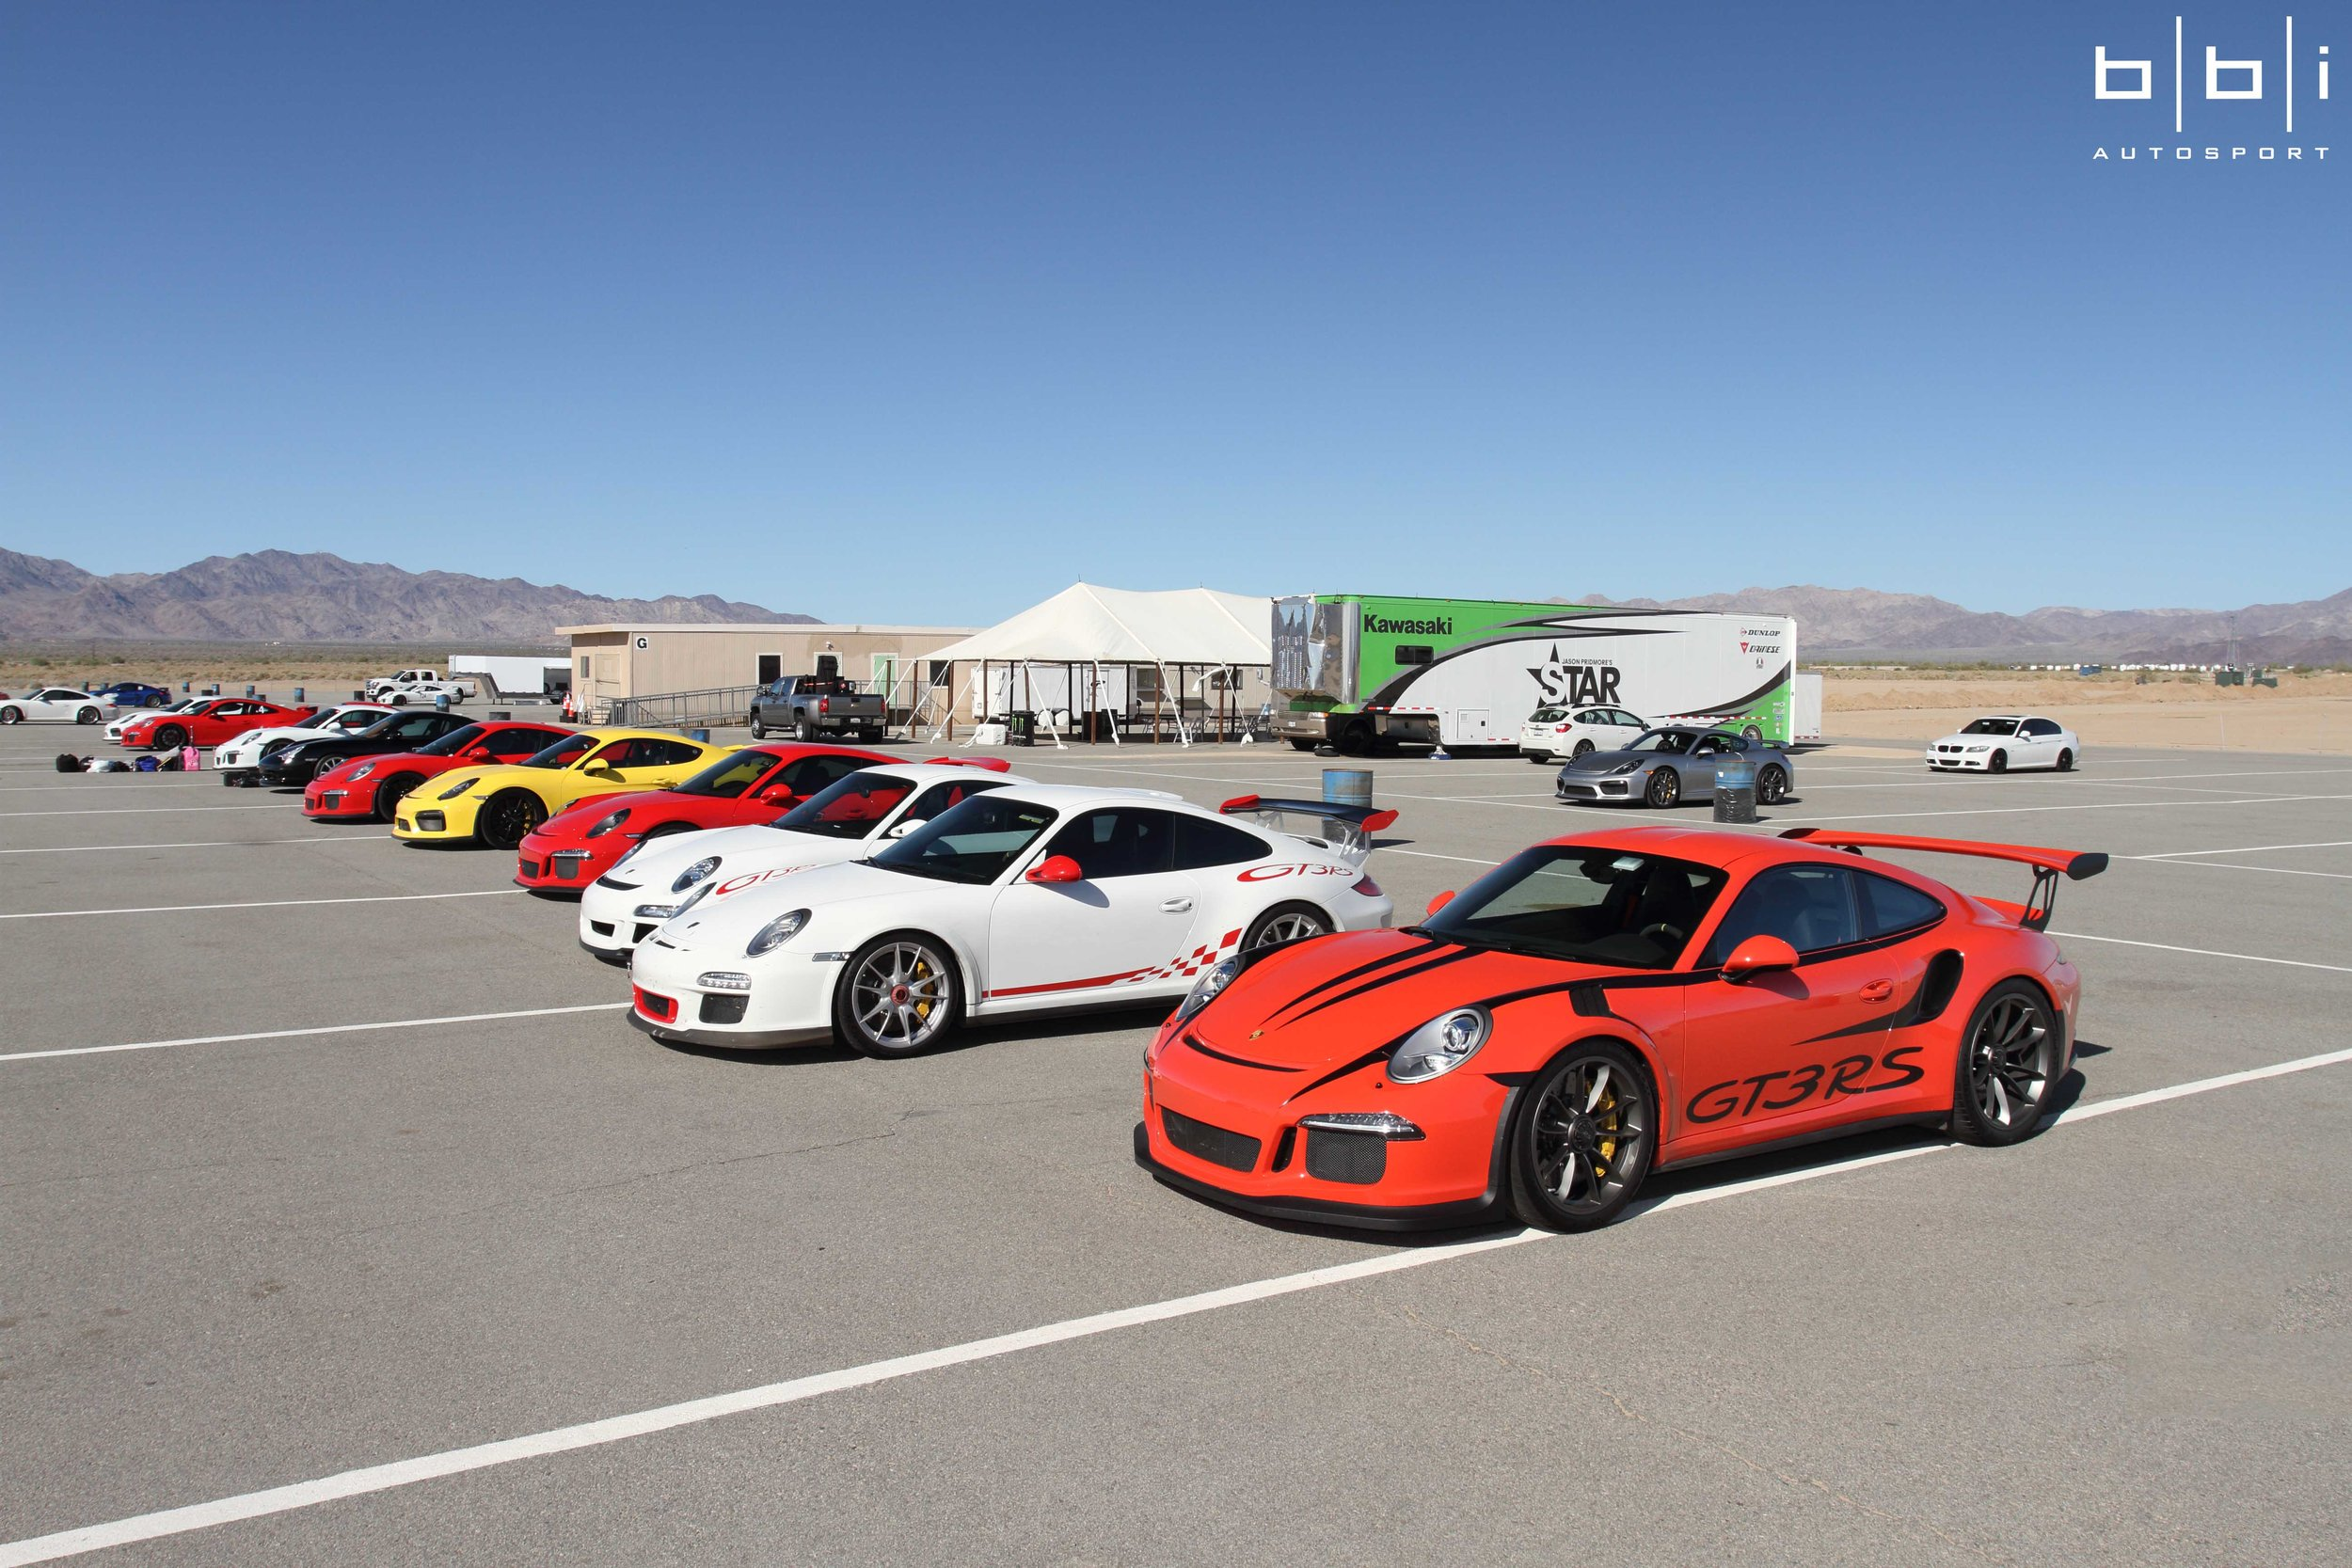 Our first private BBi Autosport Track Day at Chuckwalla Valley Raceway featured a good assortment of cars and everyone had a great time despite the windy sandstorms. The track was a little slick, so no records set, but MASSIVE amount of track time and I think most will agree, no traffic at all! For those that hadn't been, Chuckwalla is a fun track, right? Once you do private days, you don't want to do anything else, it spoils you!  The vibe was great and all the drivers were courteous. We heard no issues at all of any craziness except Betim playing Ken Block in that insane BBi Project Swan 997 Turbo that shot flames on upshifts. Our friends from HG Motorsports down in San Diego had a lot of fun with their 991 GT3 Super StreetCup as well.  Anyways, we hope everyone had a great time, and if there is anything that didn't meet your expectations (except the wind!) please let us know. We are going to do about 4 of these a year, with the next target being Buttonwillow Raceway sometime later summer/early fall. We would like to thank our friend Chris, Rennlist member Syperxx, for helping us organize the event and everyone one else for joining us!